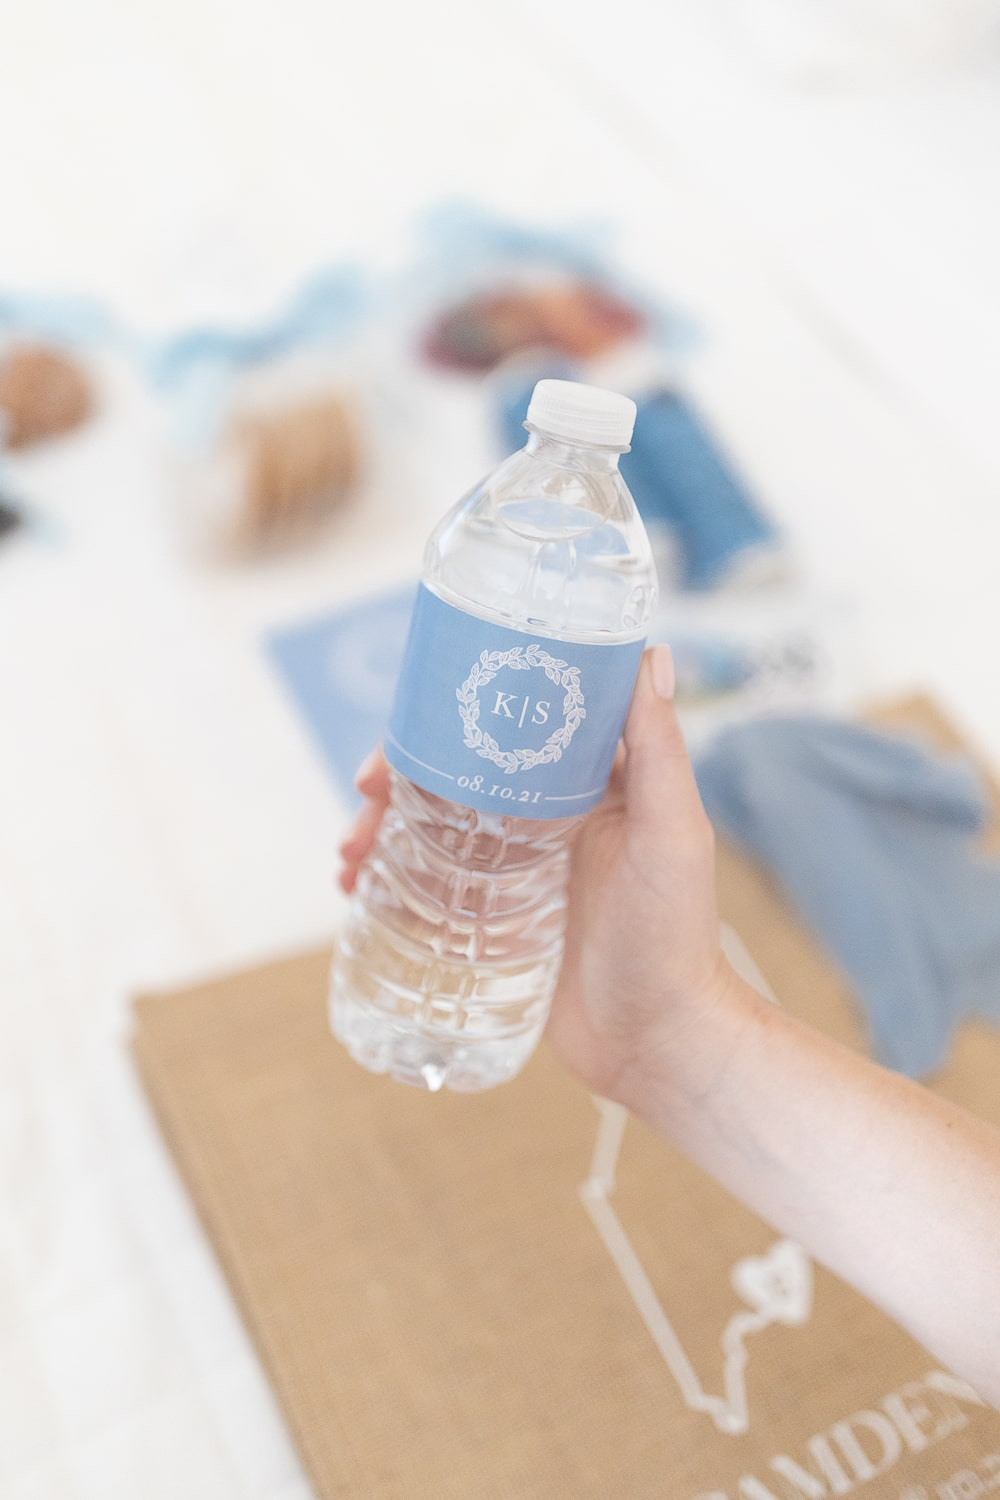 Monogrammed water bottle labels used in blogger Stephanie Ziajka's wedding welcome bags on Diary of a Debutante